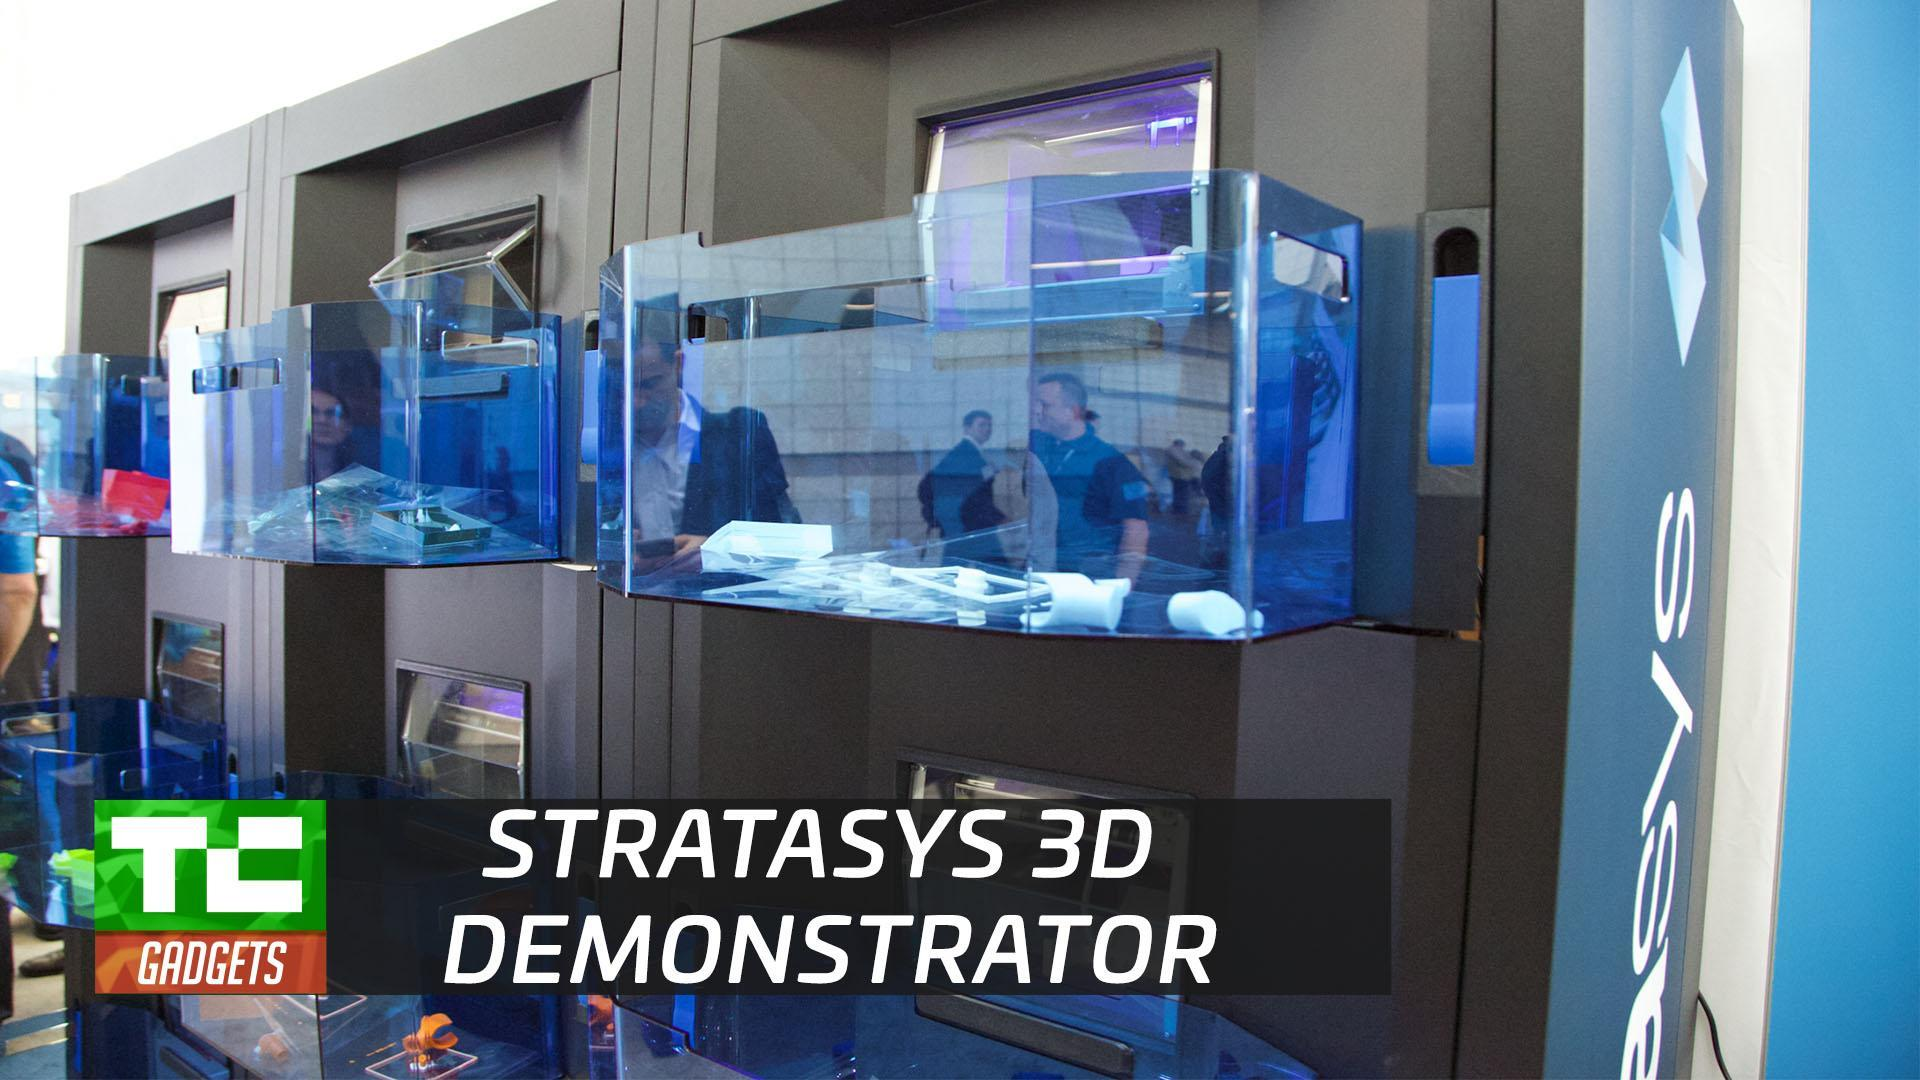 Stratasys' Continuous Build 3D Demonstrator